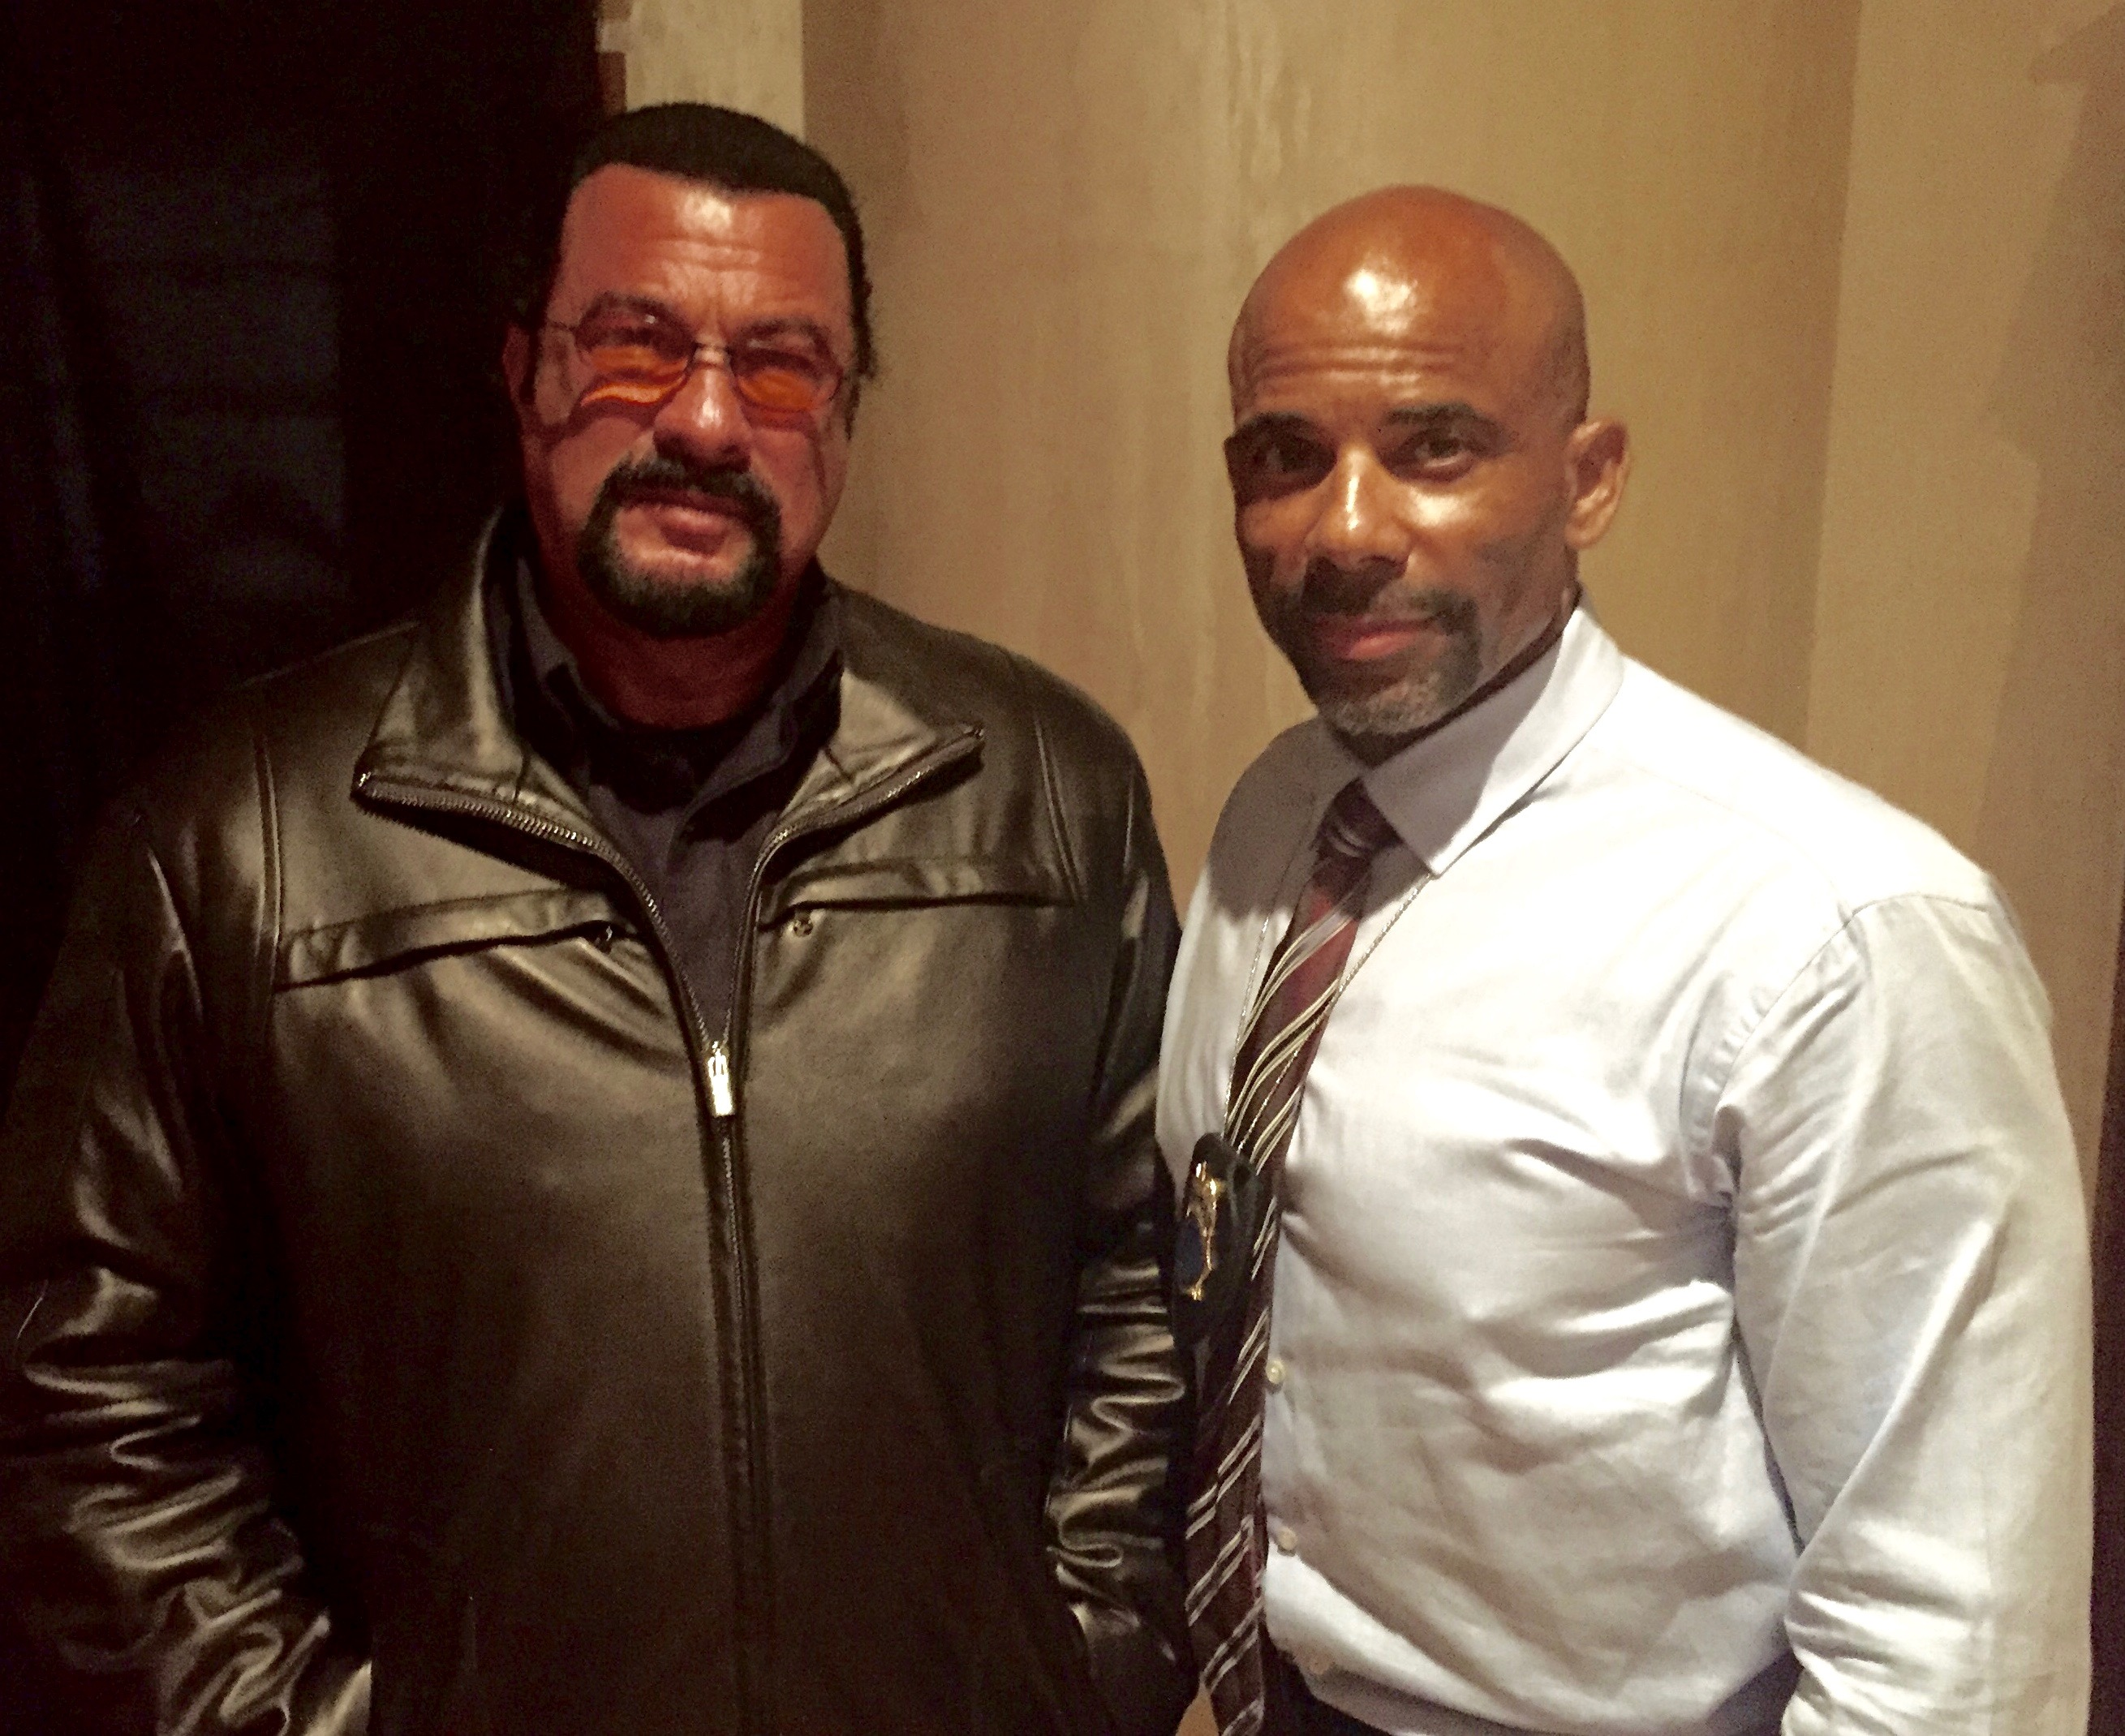 Latest Release: Killing Salazar with Steven Seagal